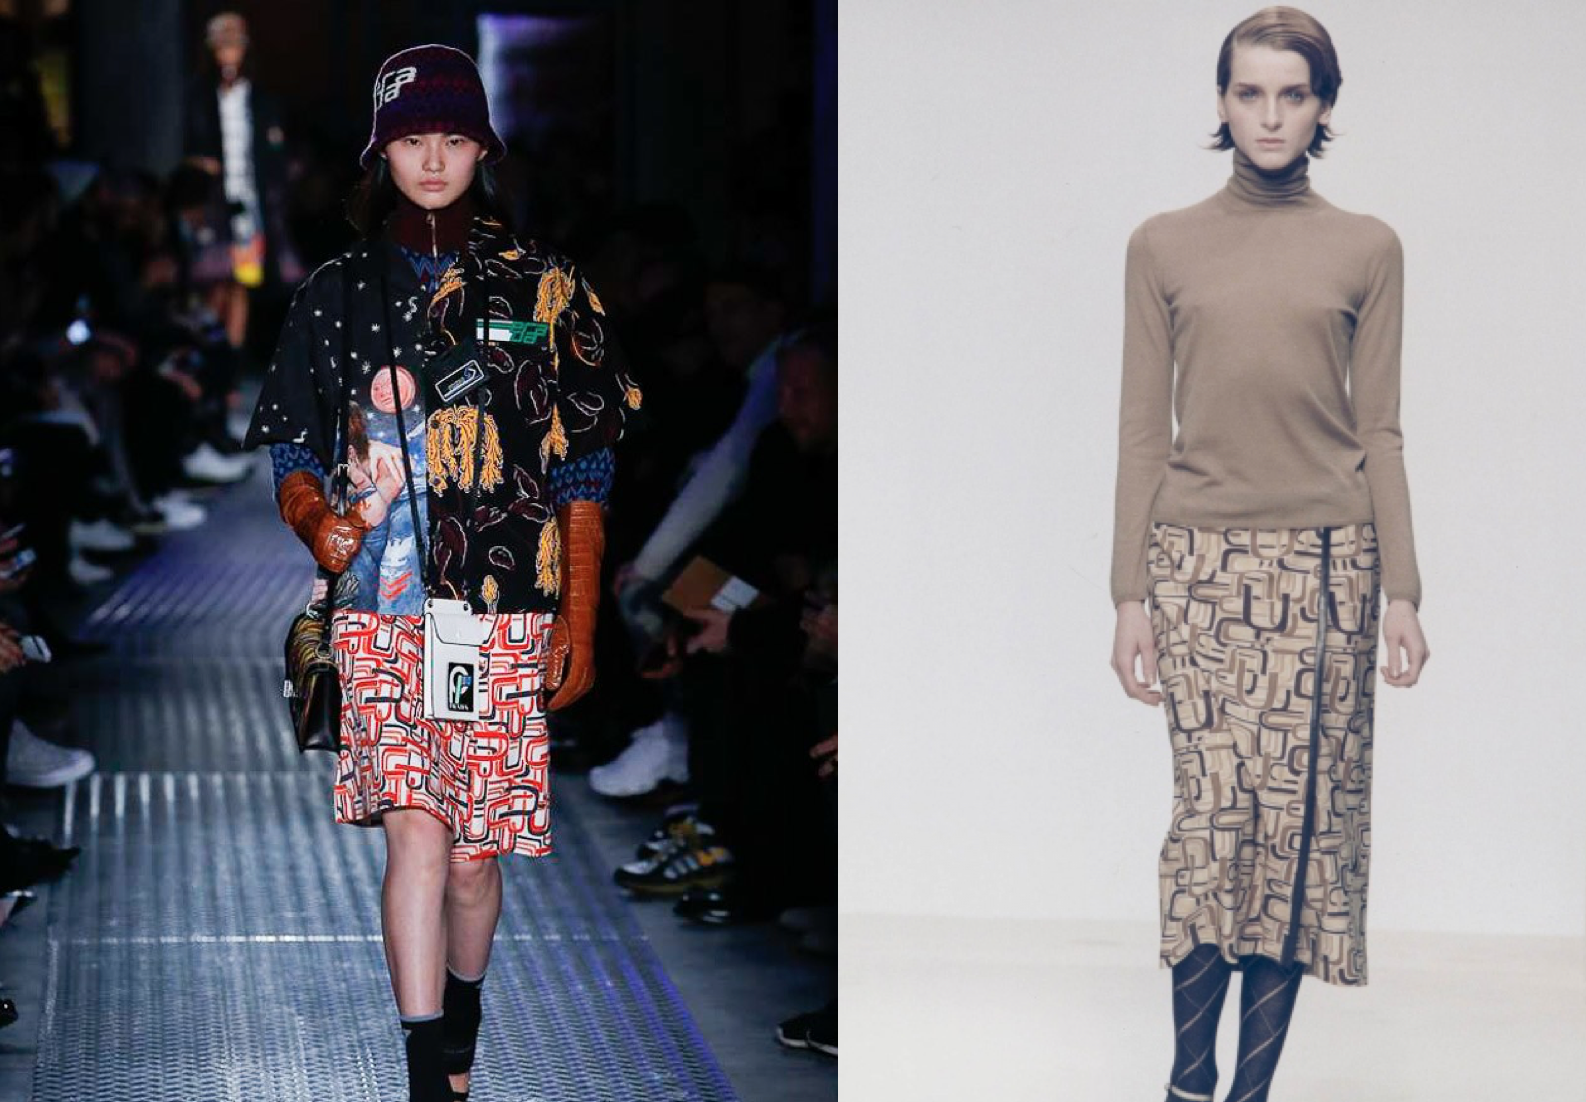 Prada F/W 2018 geometric print (left) & Prada F/W 1996 (right)